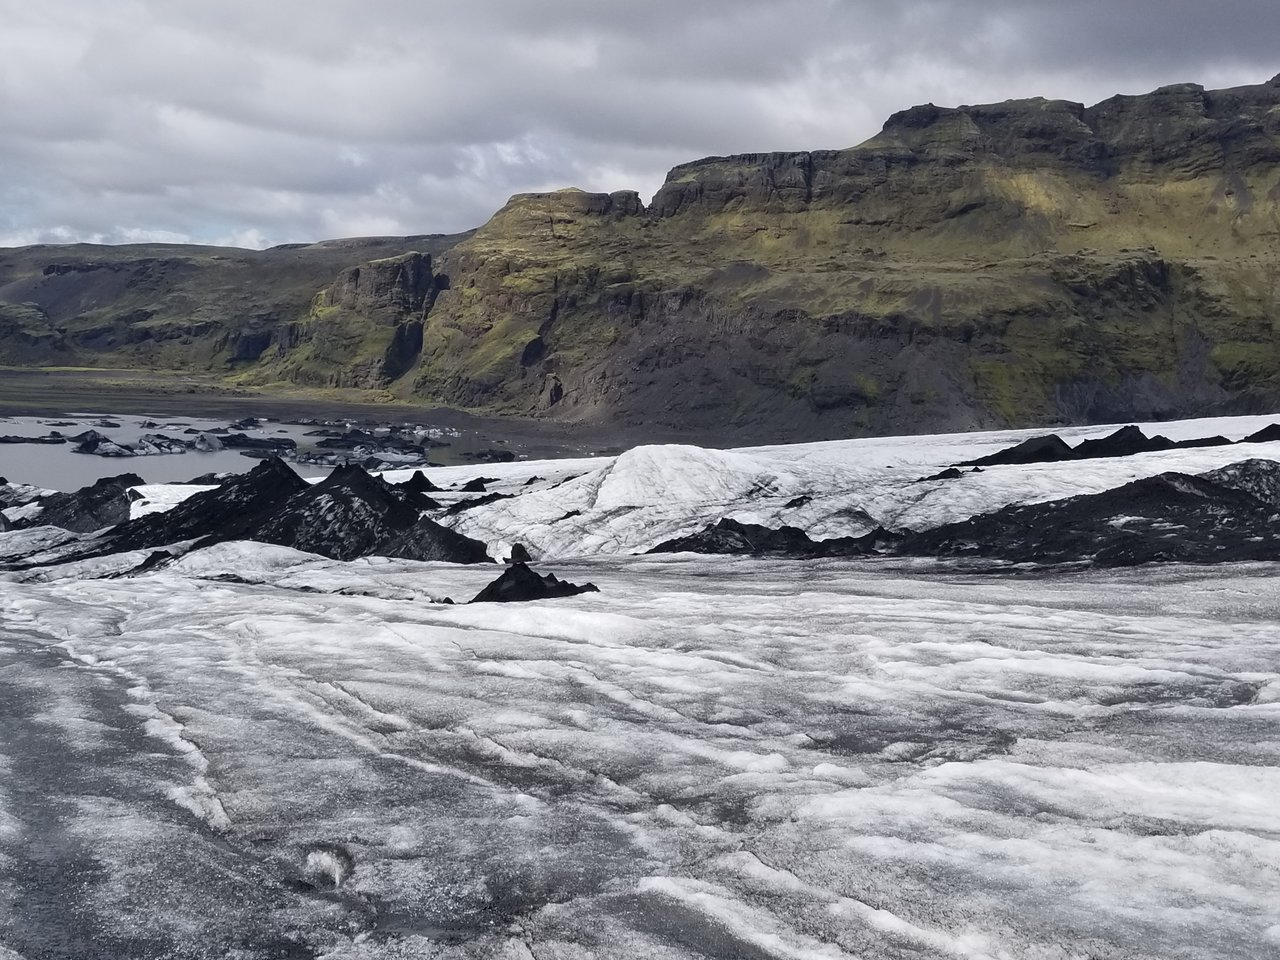 Myrdalsjokull | Photo taken by Celisse B